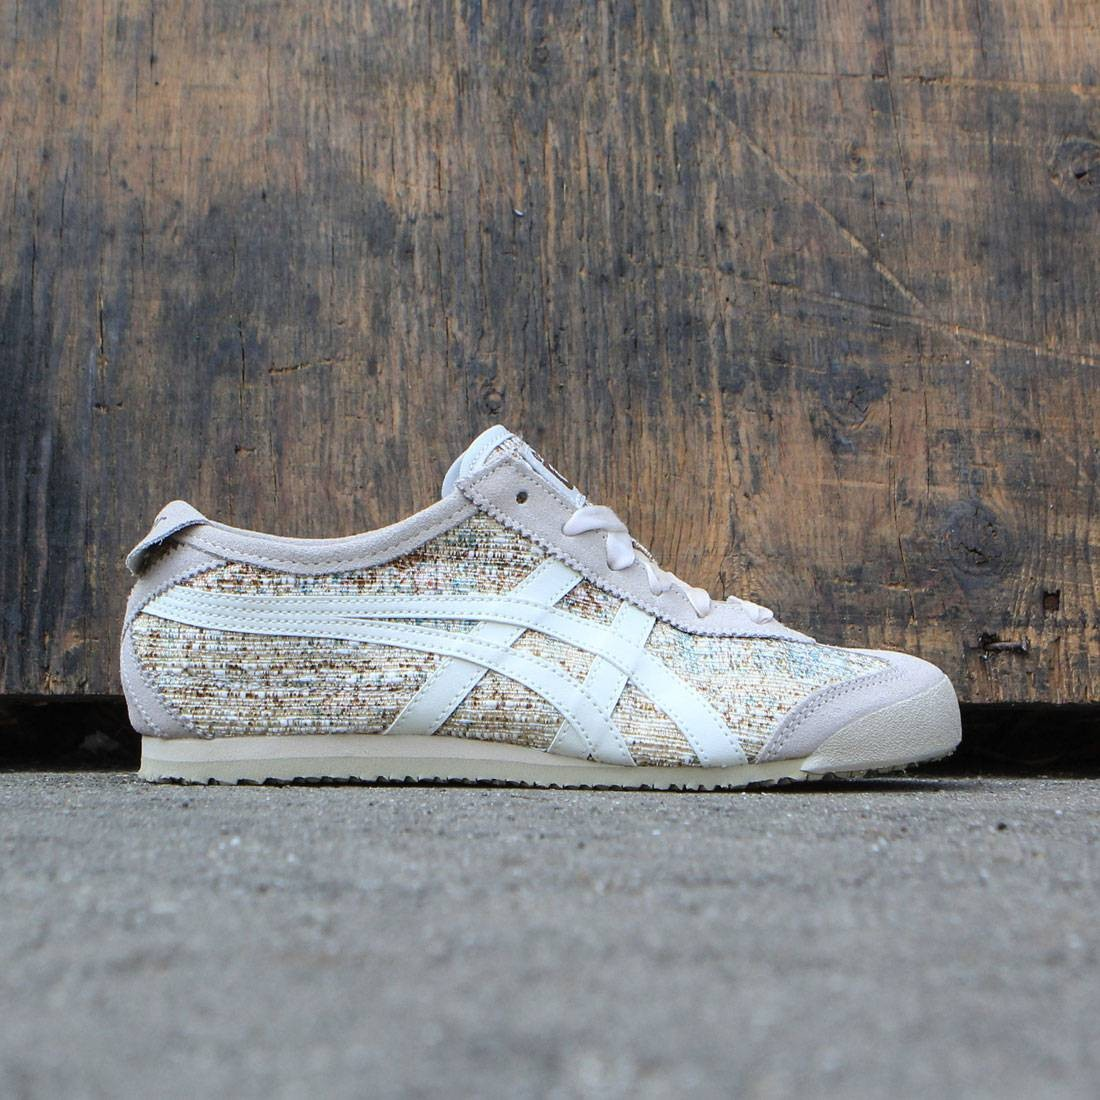 onitsuka tiger mexico 66 new york women's release team